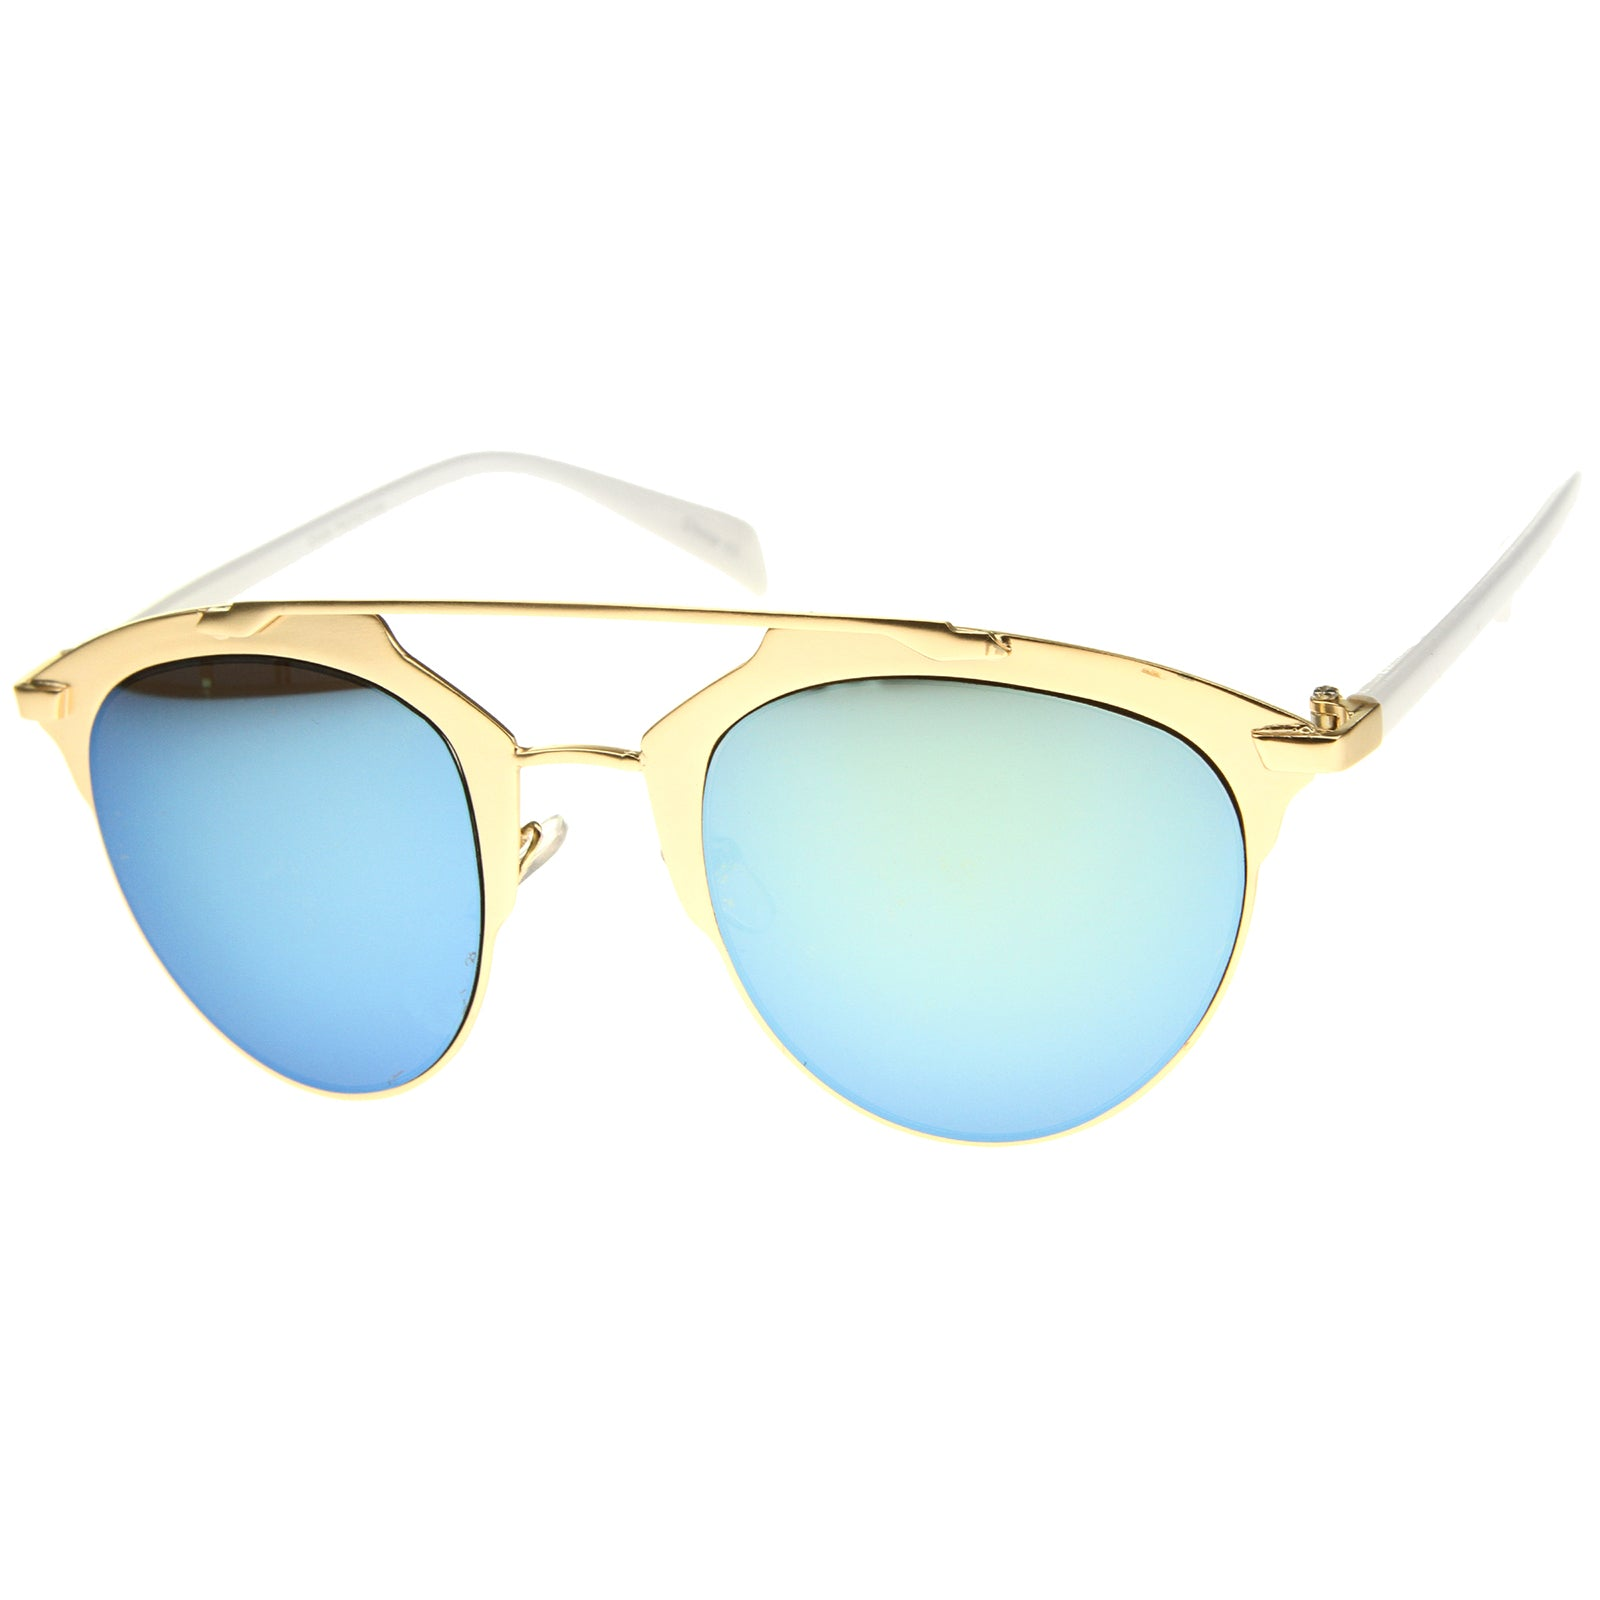 Modern Fashion Metal Double Bridge Mirror Lens Pantos Aviator Sunglasses 50mm - sunglass.la - 2